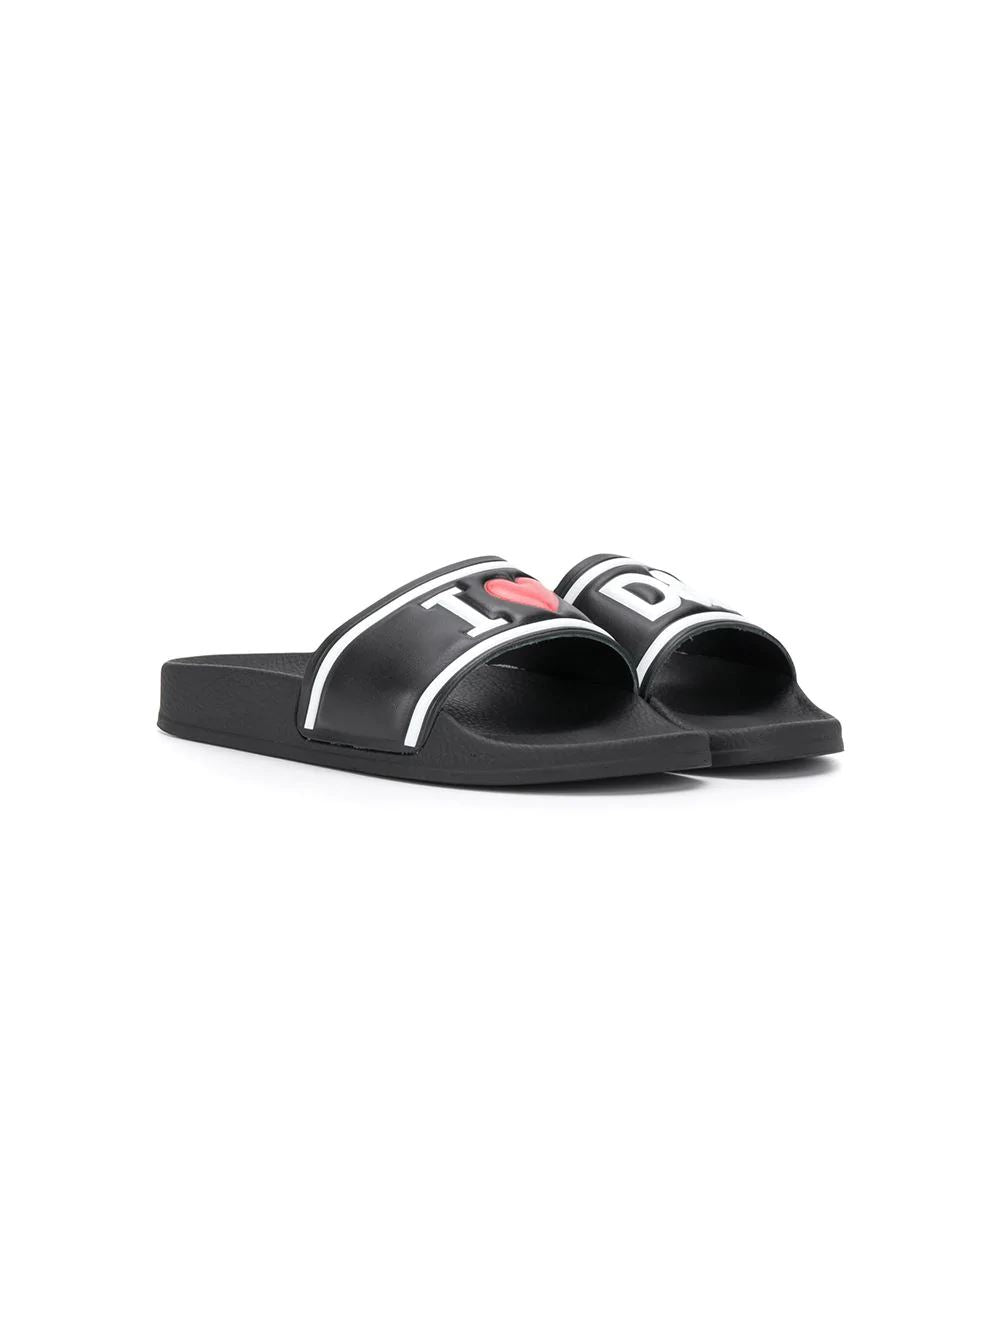 Dolce & Gabbana Logo Sliders - Maison De Fashion